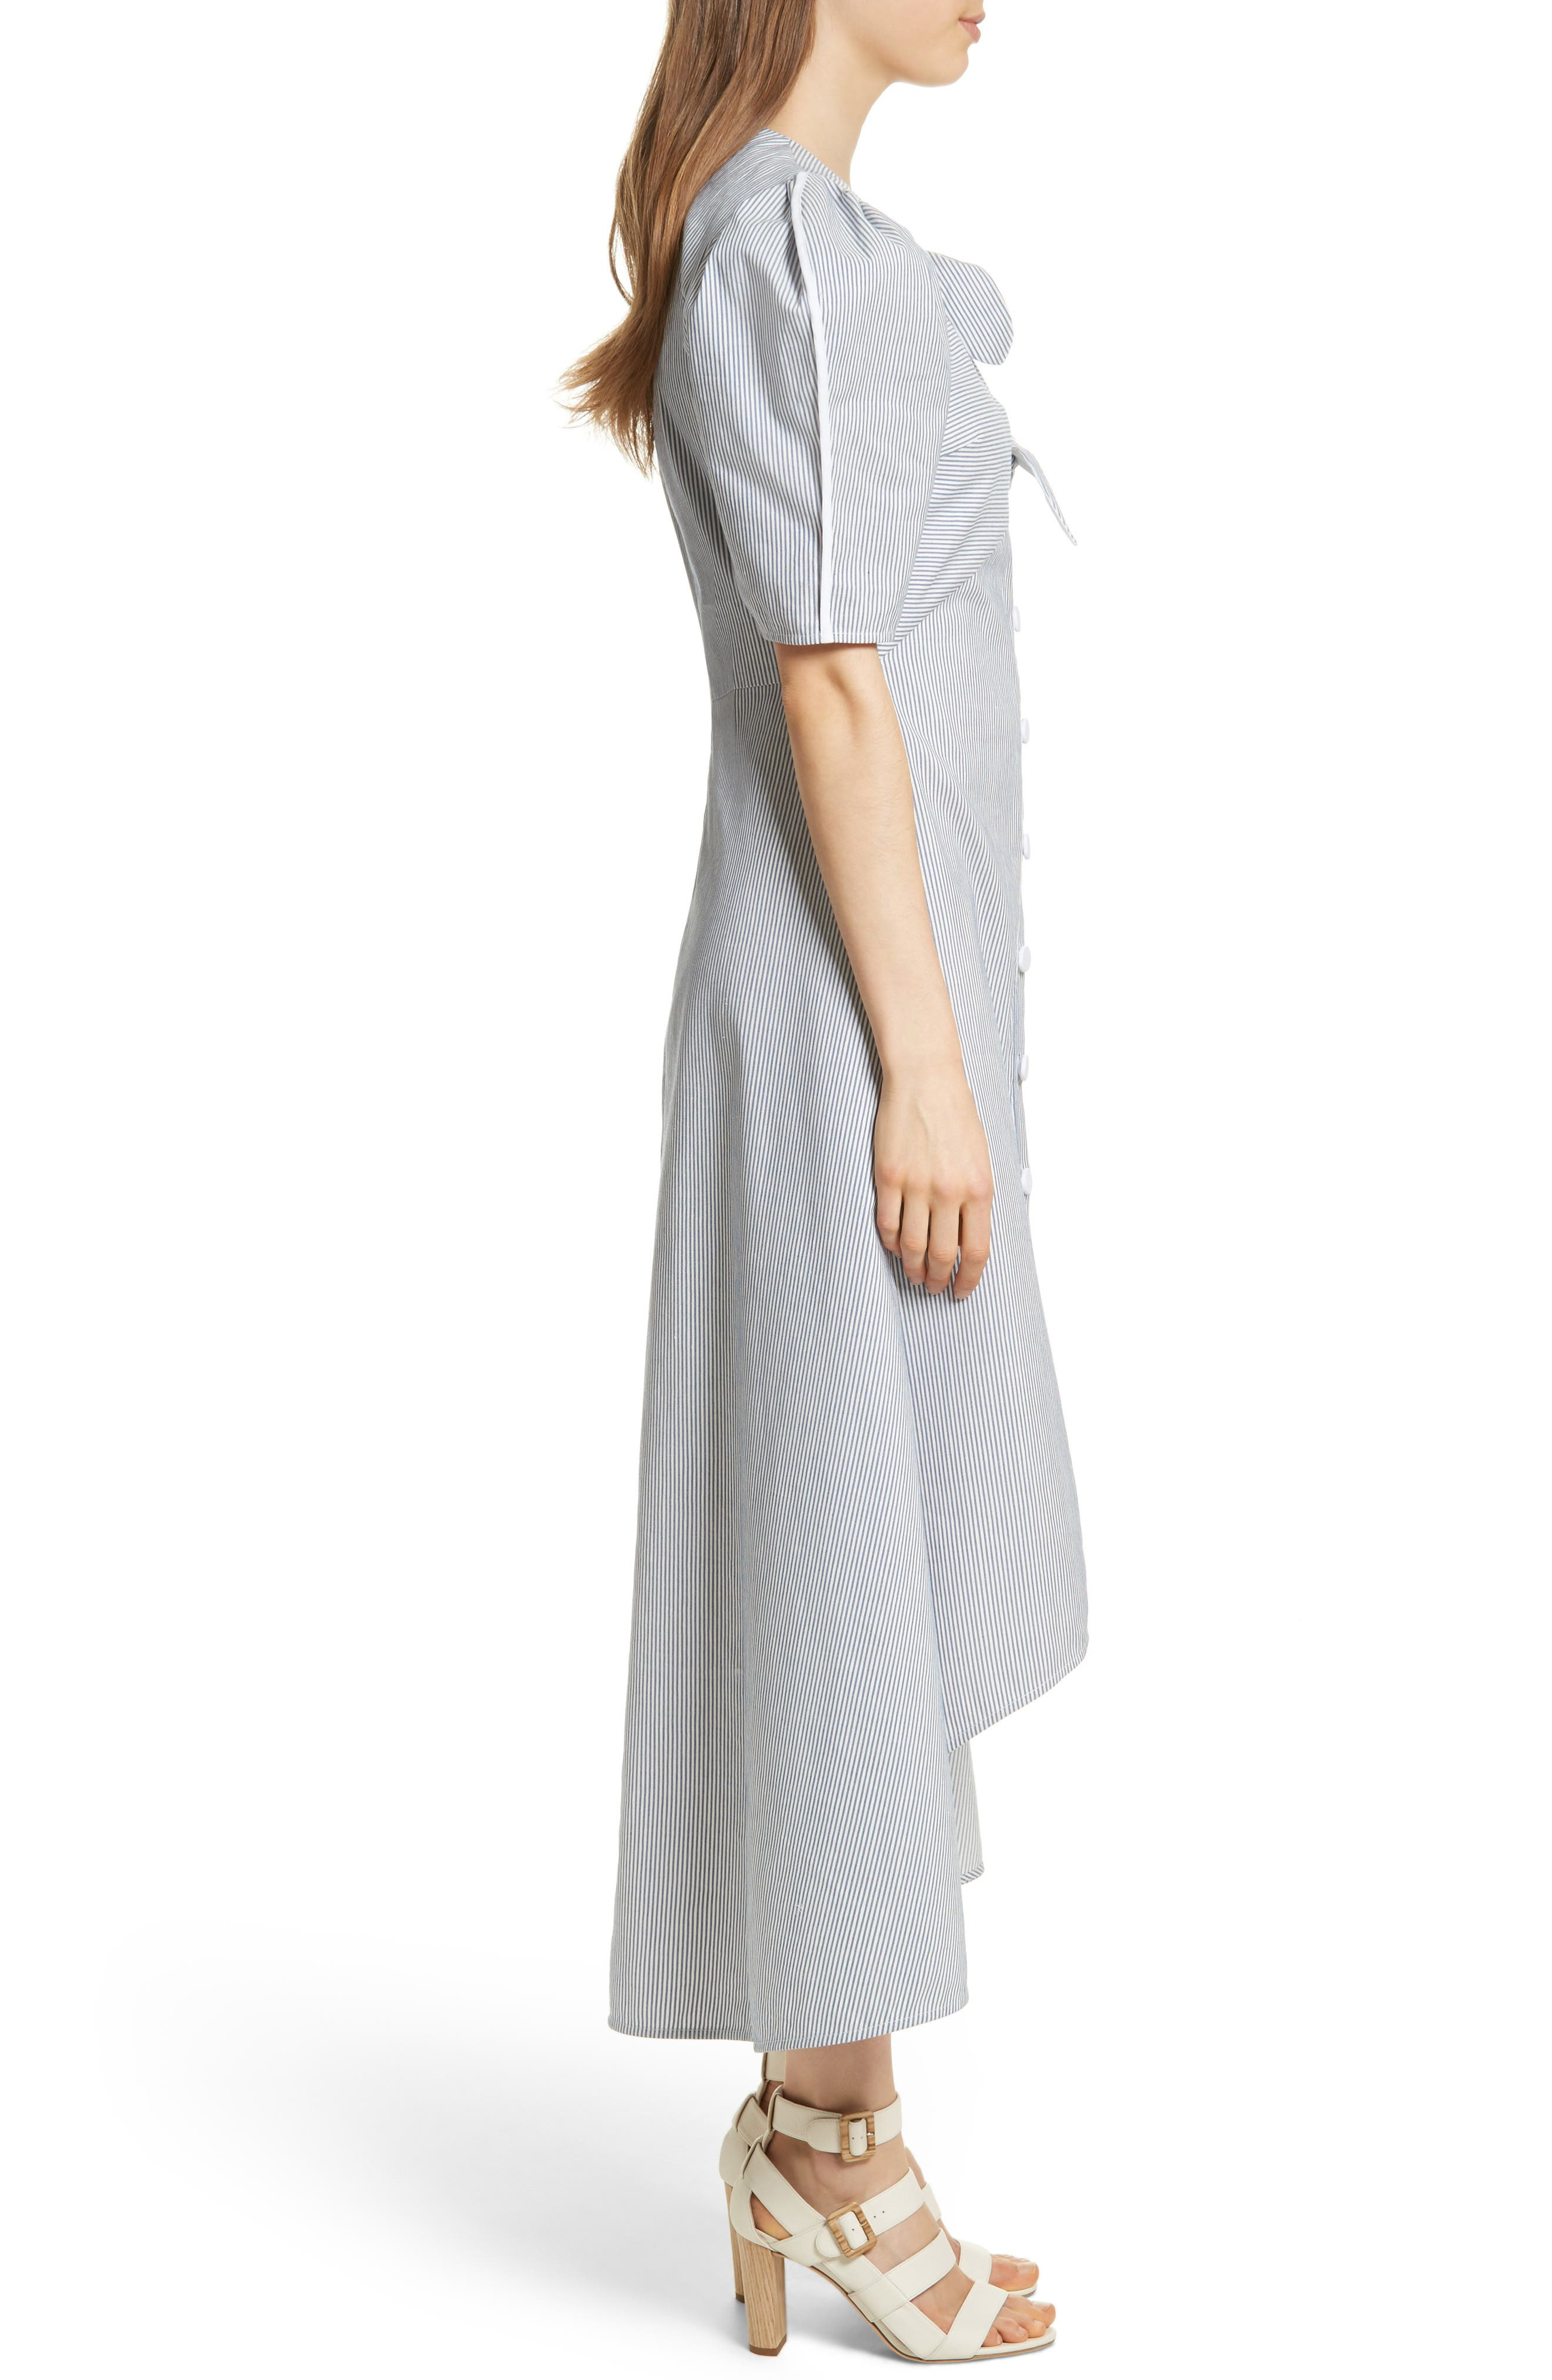 Prose & Poetry Camila Double Front Tie Midi Dress,                             Alternate thumbnail 3, color,                             250